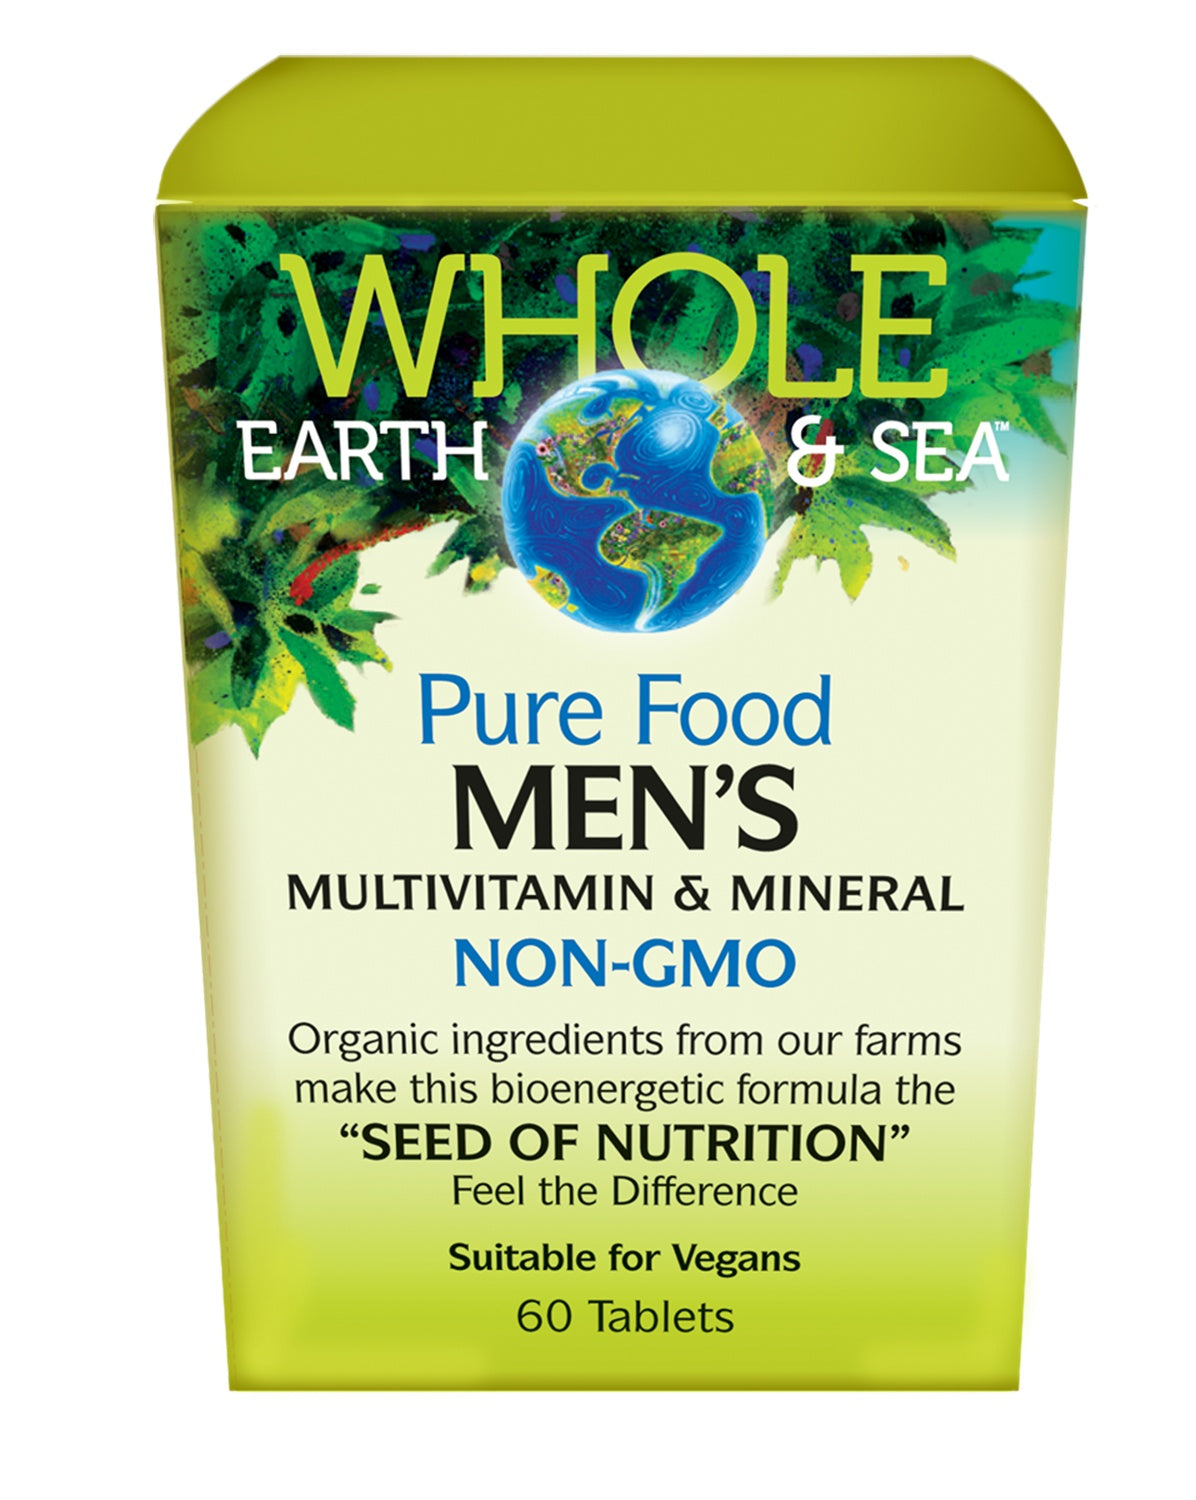 Supplements & Vitamins - Whole Earth & Sea - Men's Multivitamin & Mineral, 60 Tabs